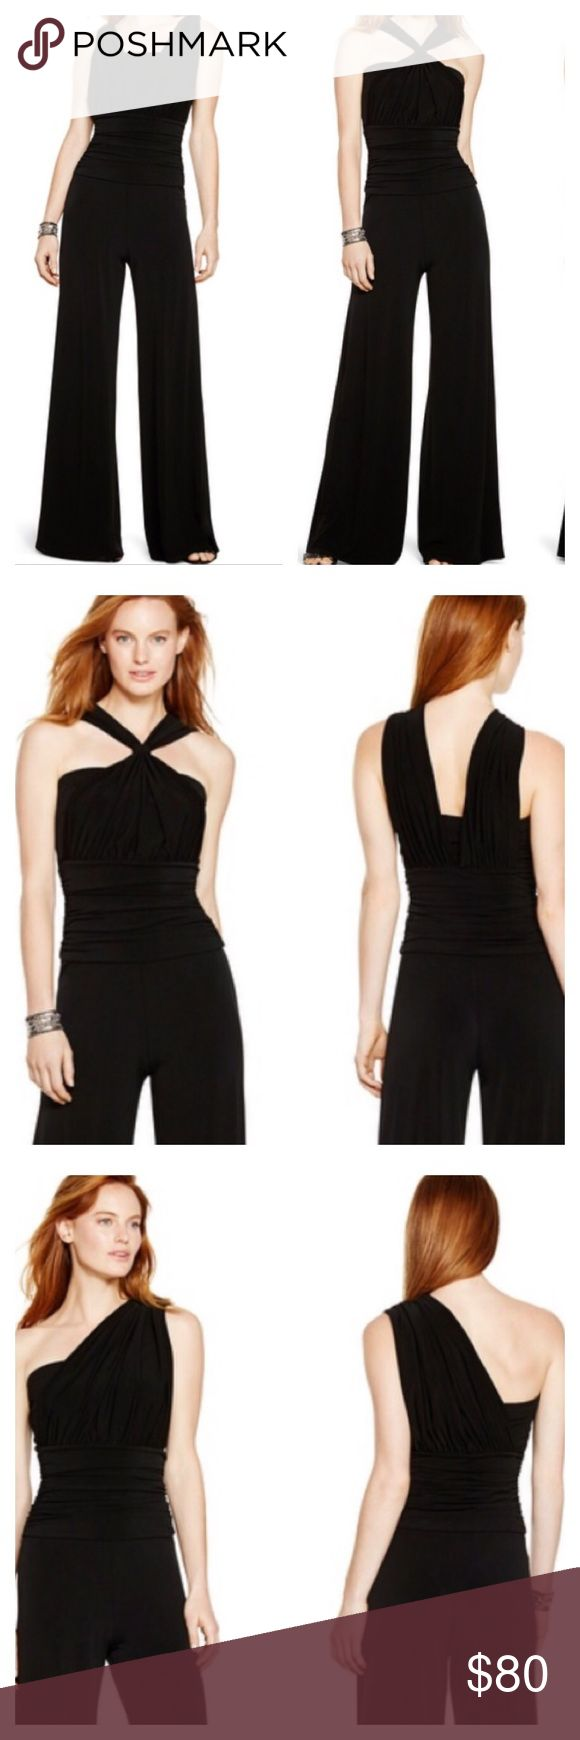 "⚜WHBM Genius Convertible Black Jumpsuit⚜ An expert way to change it up without adding a thing-convertible White House Black Market jumpsuit. This jumpsuit is sold out online. Stretch fit. Easy pop-over wear with no closures. Four wearable options: sleeveless, short sleeve, halter and one shoulder. 95% spandex, lining 100% polyester. Machine wash cold. Imported. Inseam approximately 32.5"". Photo Source: www.whitehouseblackmarket.com White House Black Market Pants Jumpsuits & Rompers"